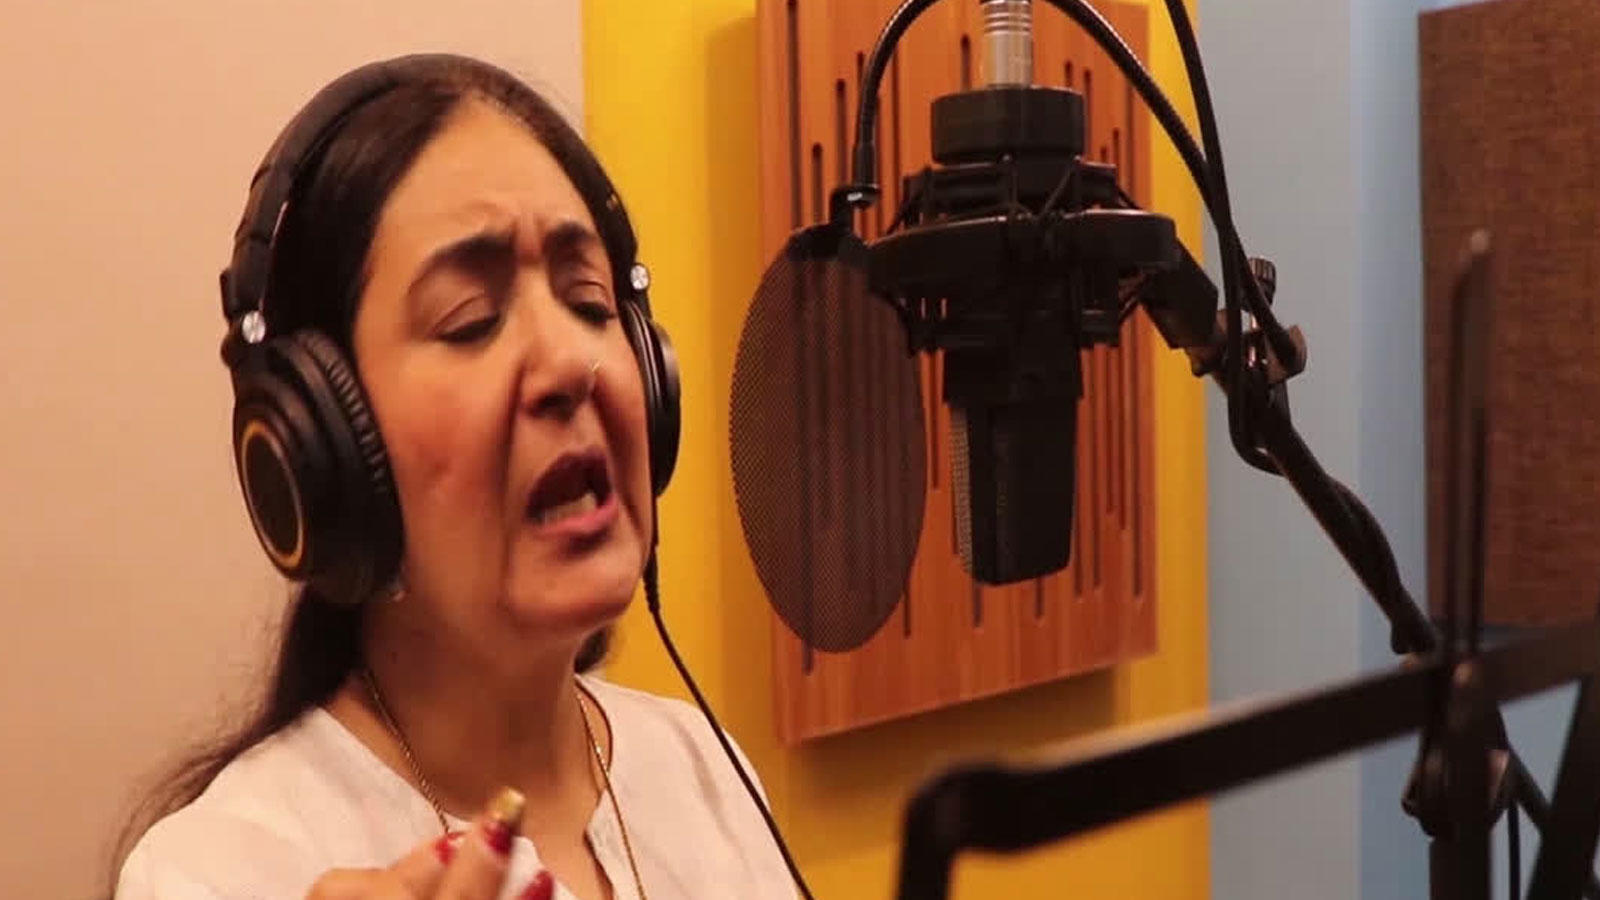 jaspinder-narula-records-a-special-song-for-women-soldiers-in-crpf